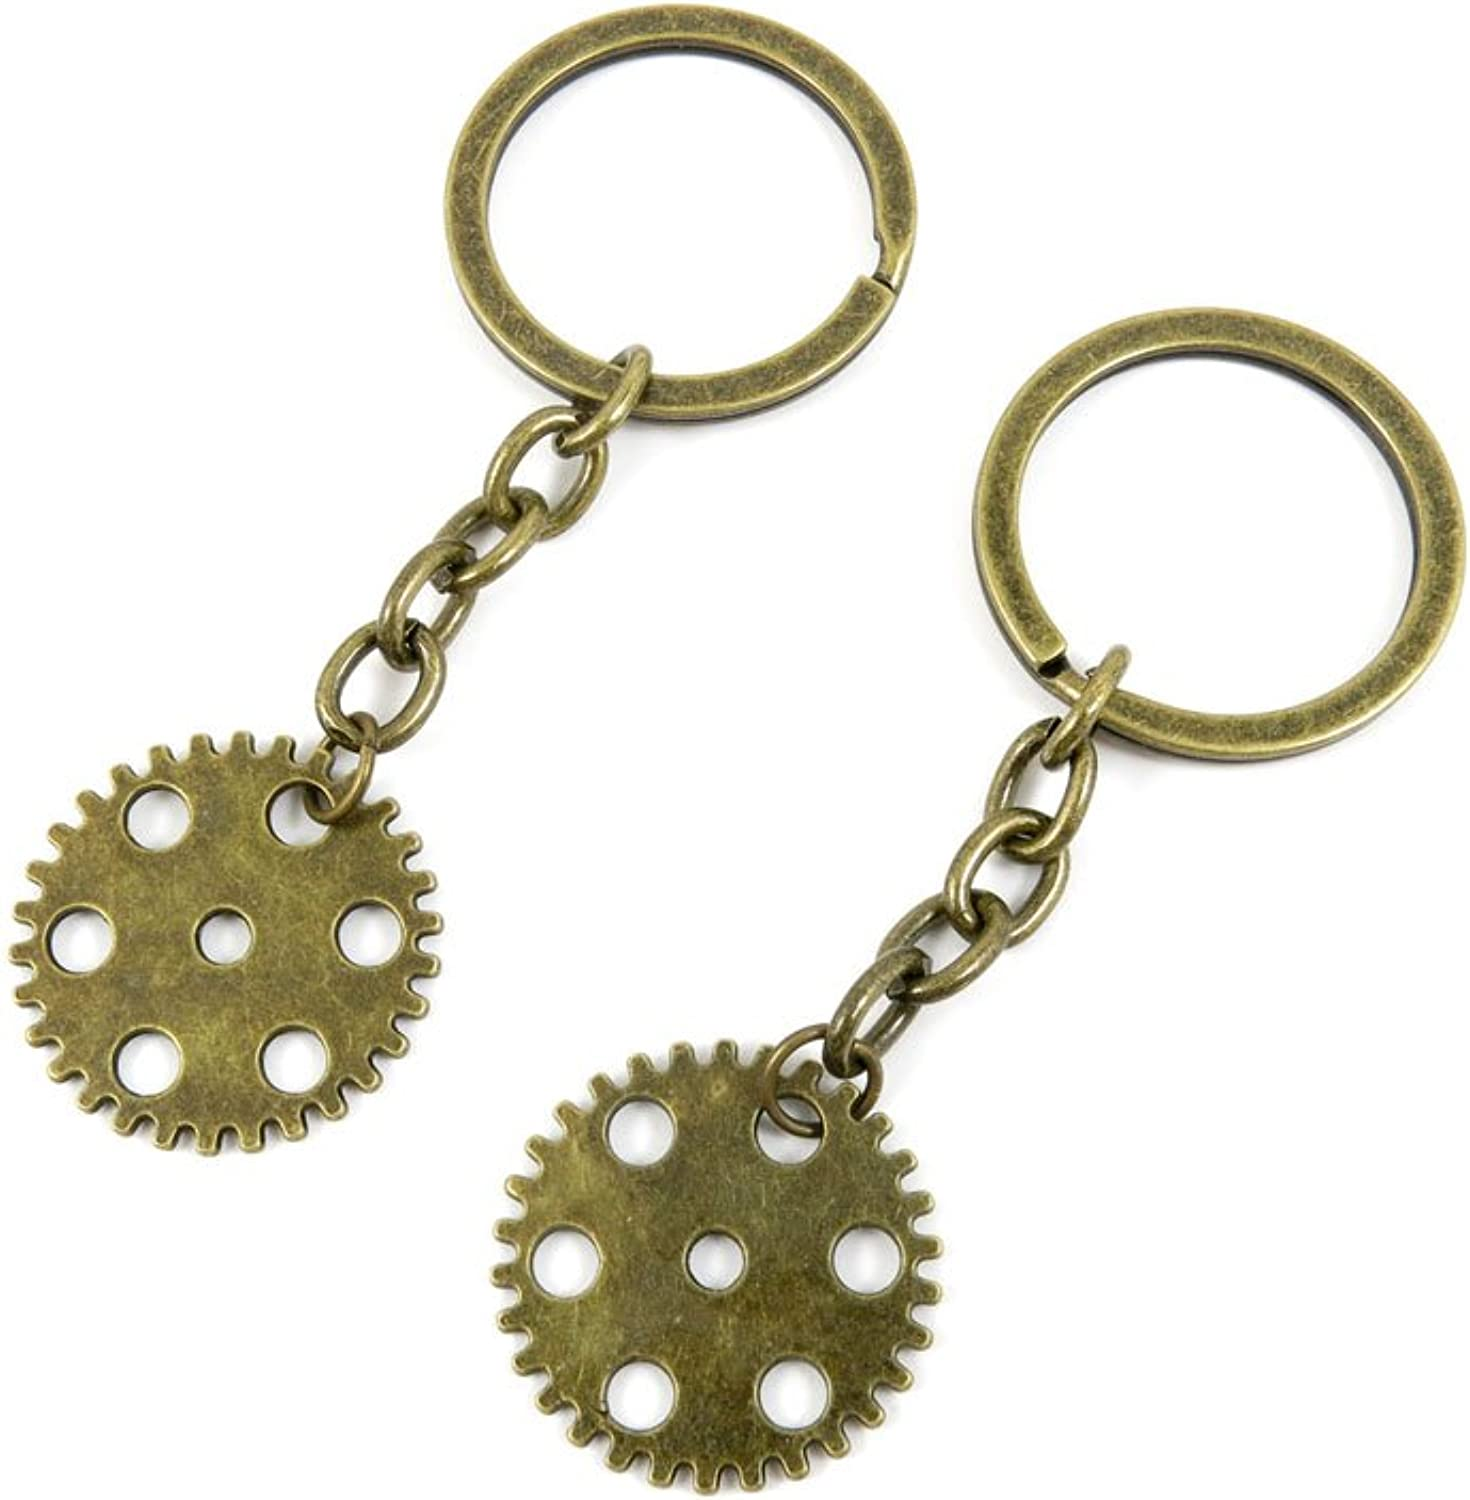 100 PCS Keyrings Keychains Key Ring Chains Tags Jewelry Findings Clasps Buckles Supplies N4SK6 Wheel Gear